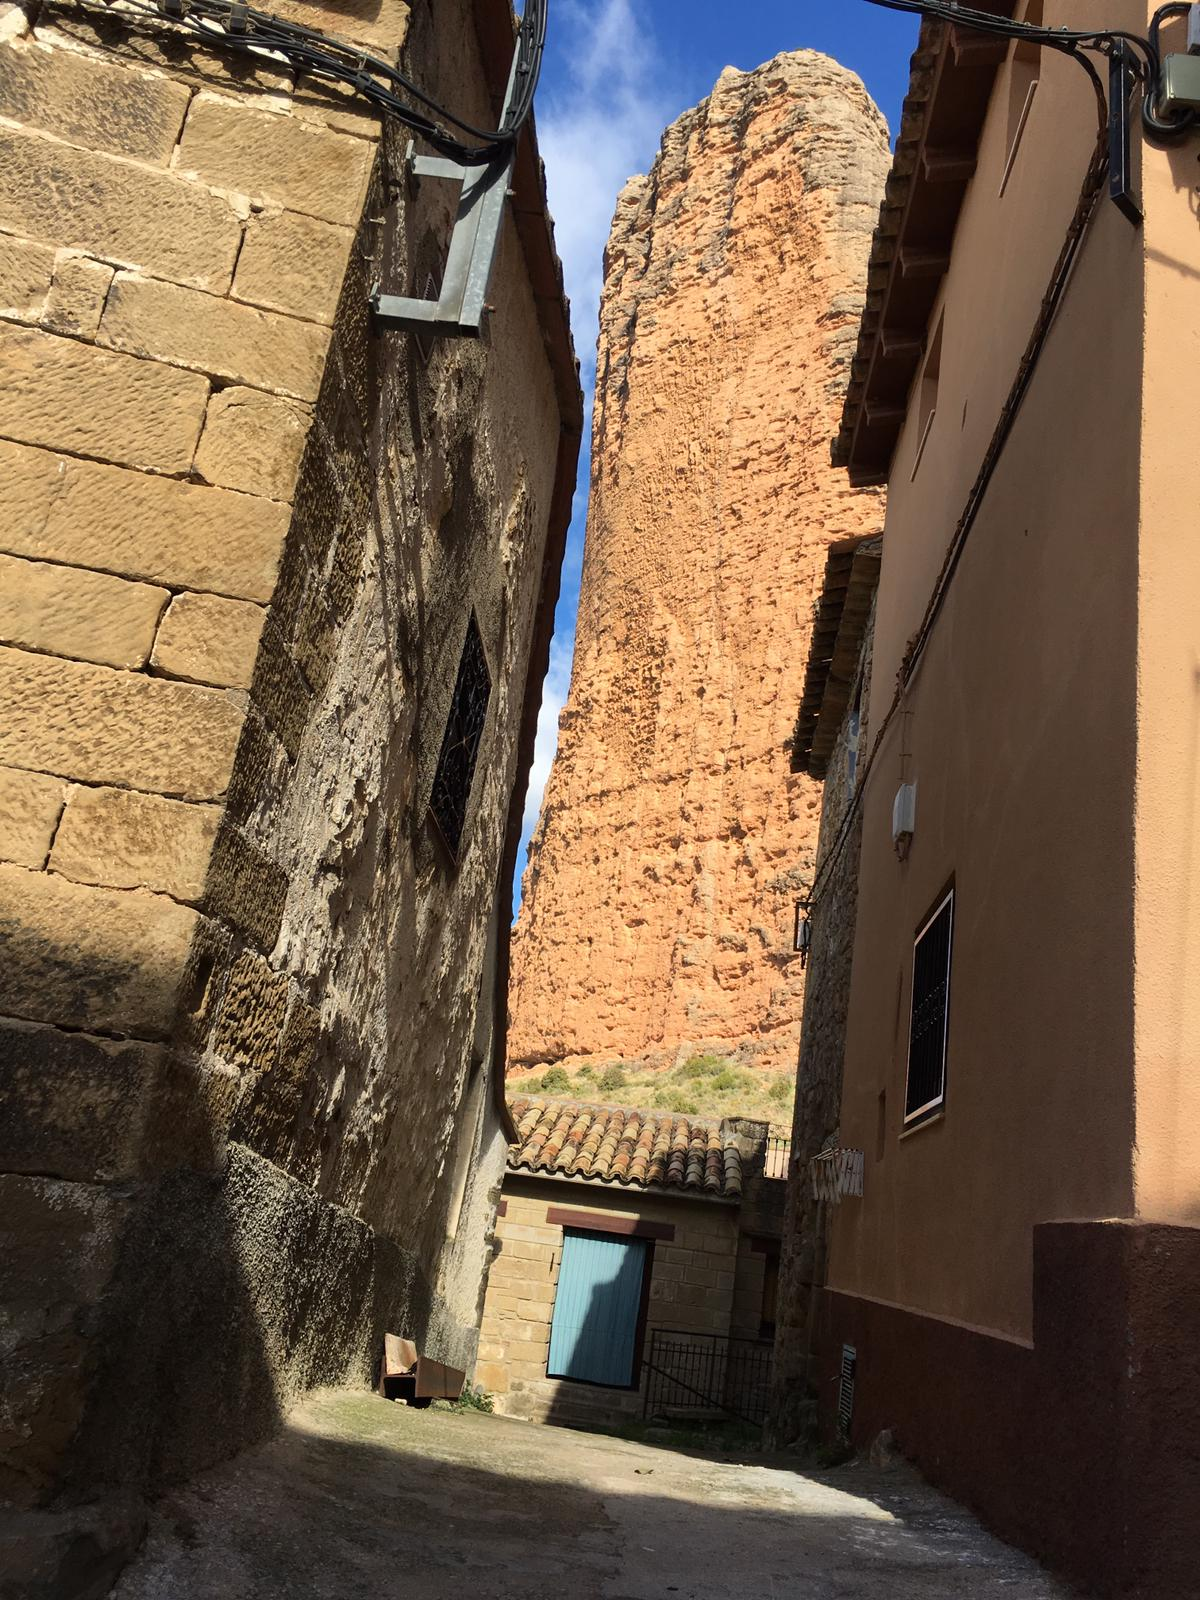 The narrows streets of the village with a stunning view on the walls